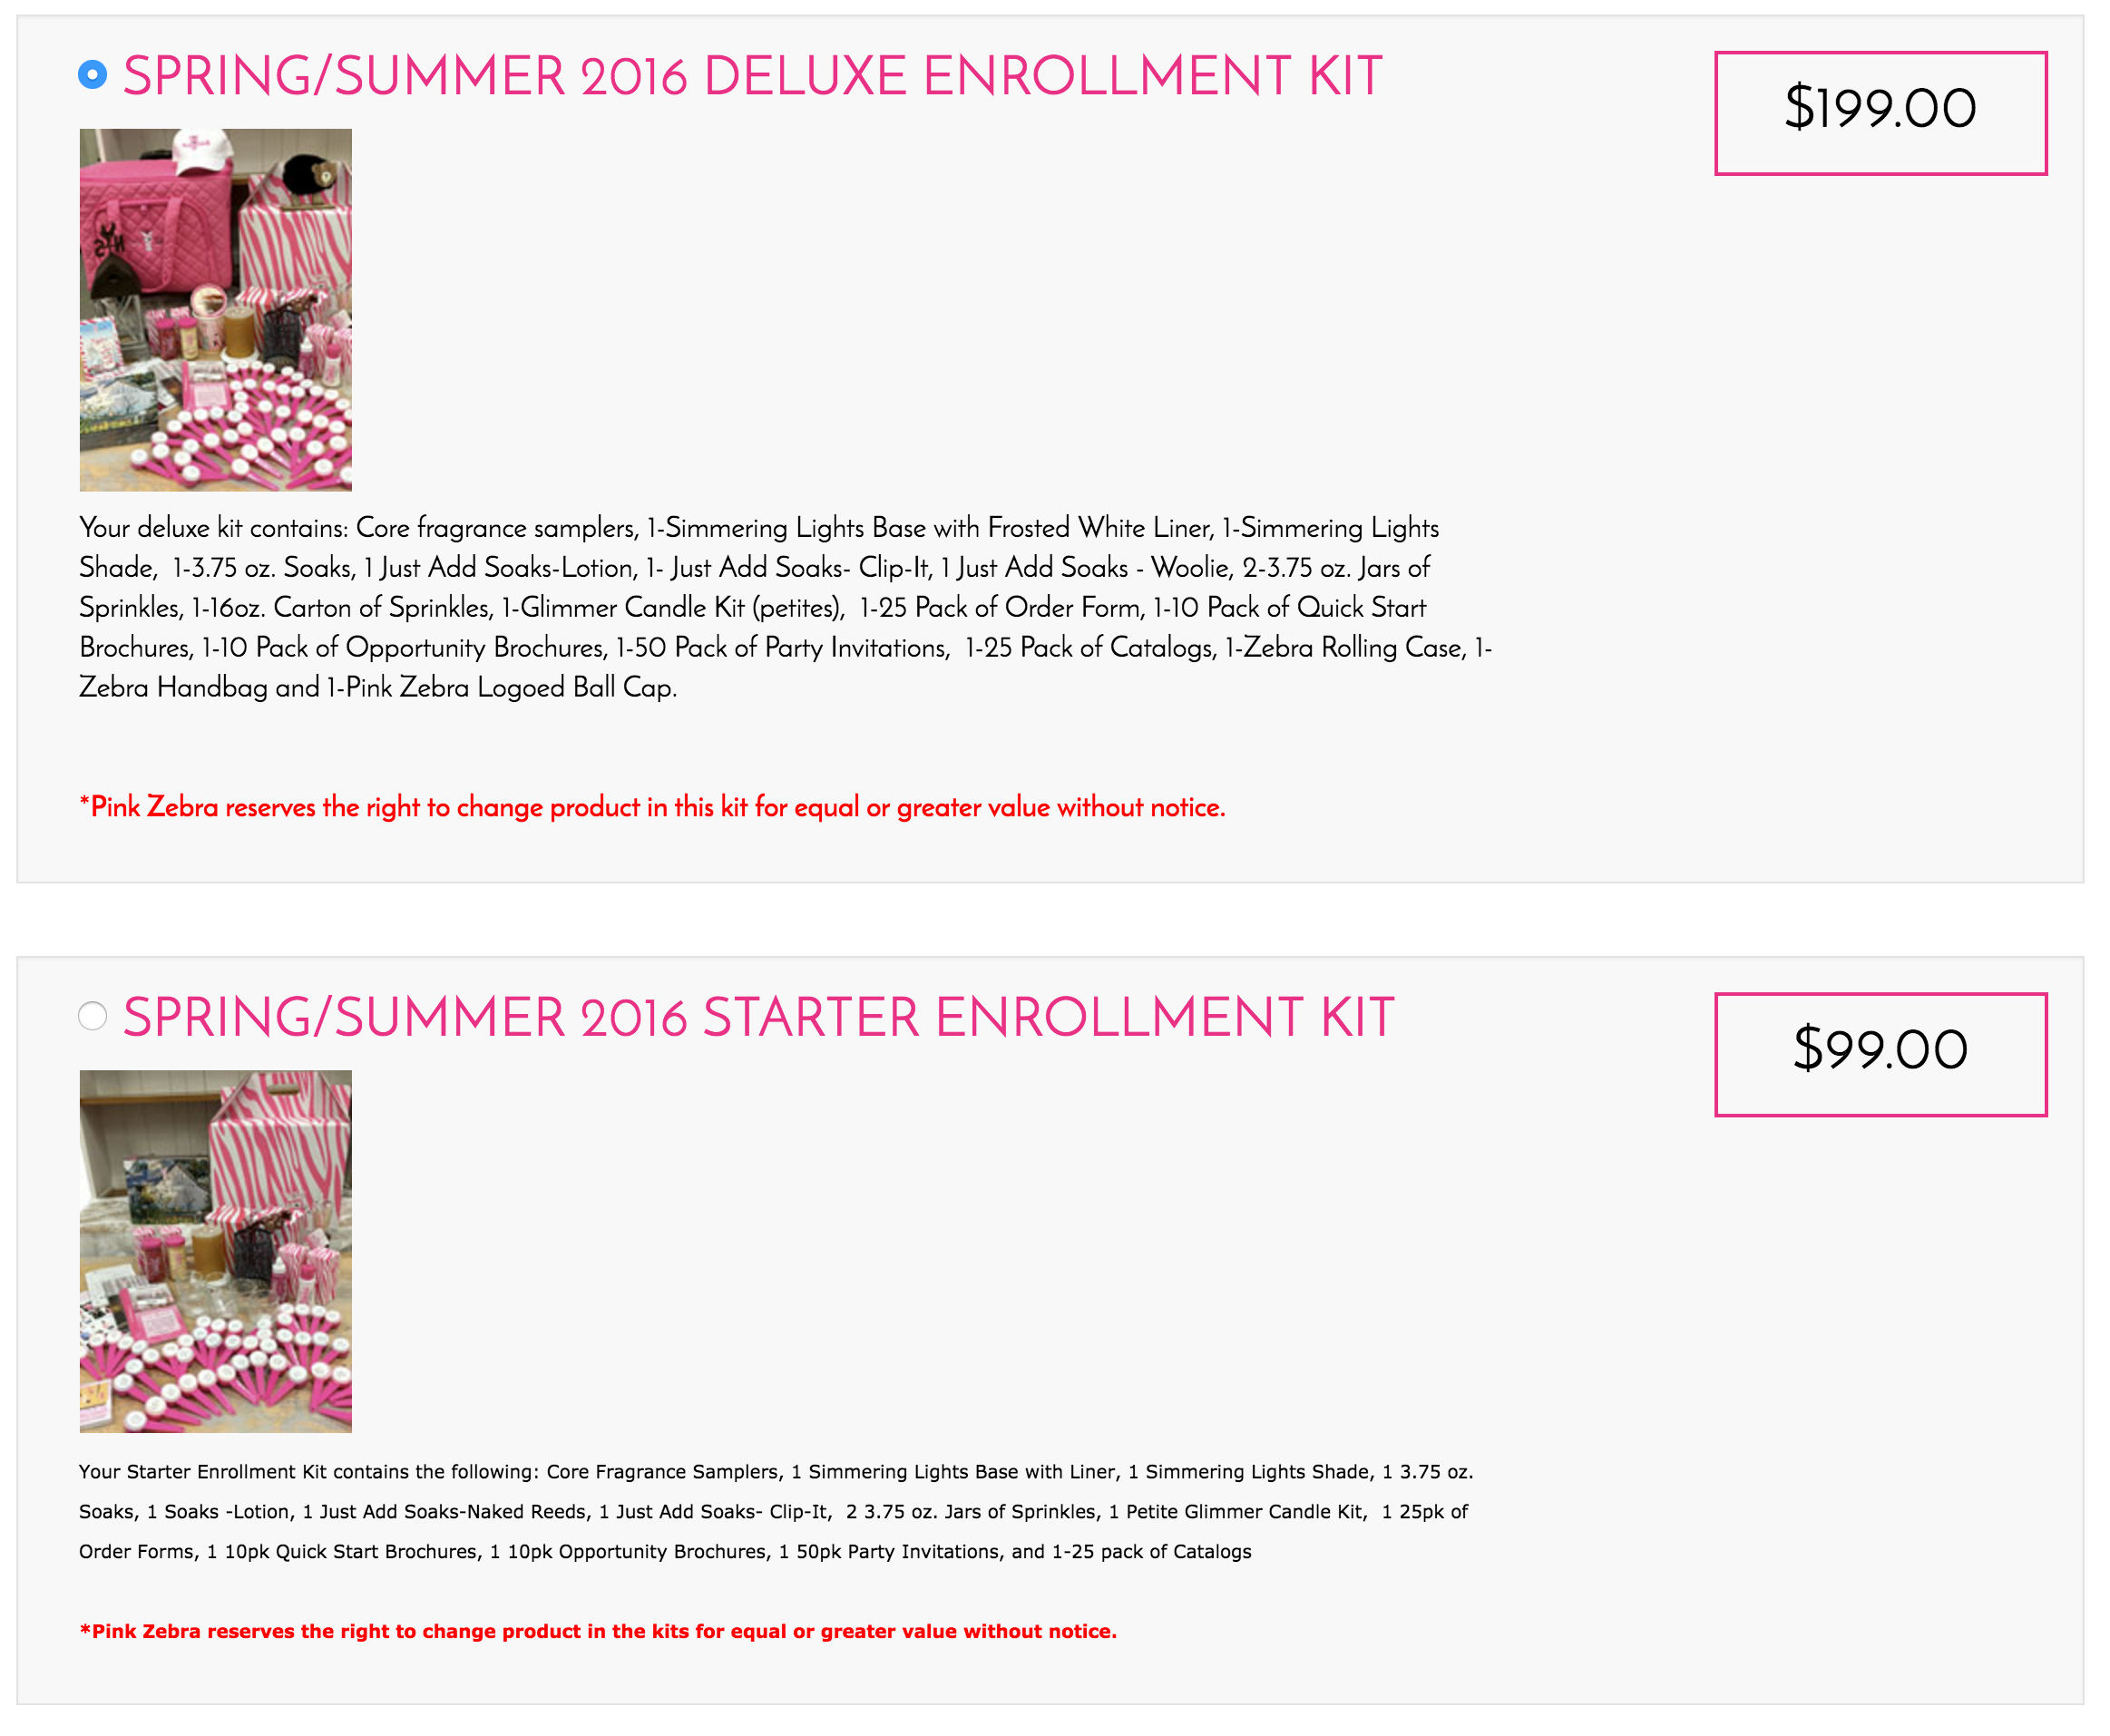 Pink Zebra Kit Rebate / Refund -